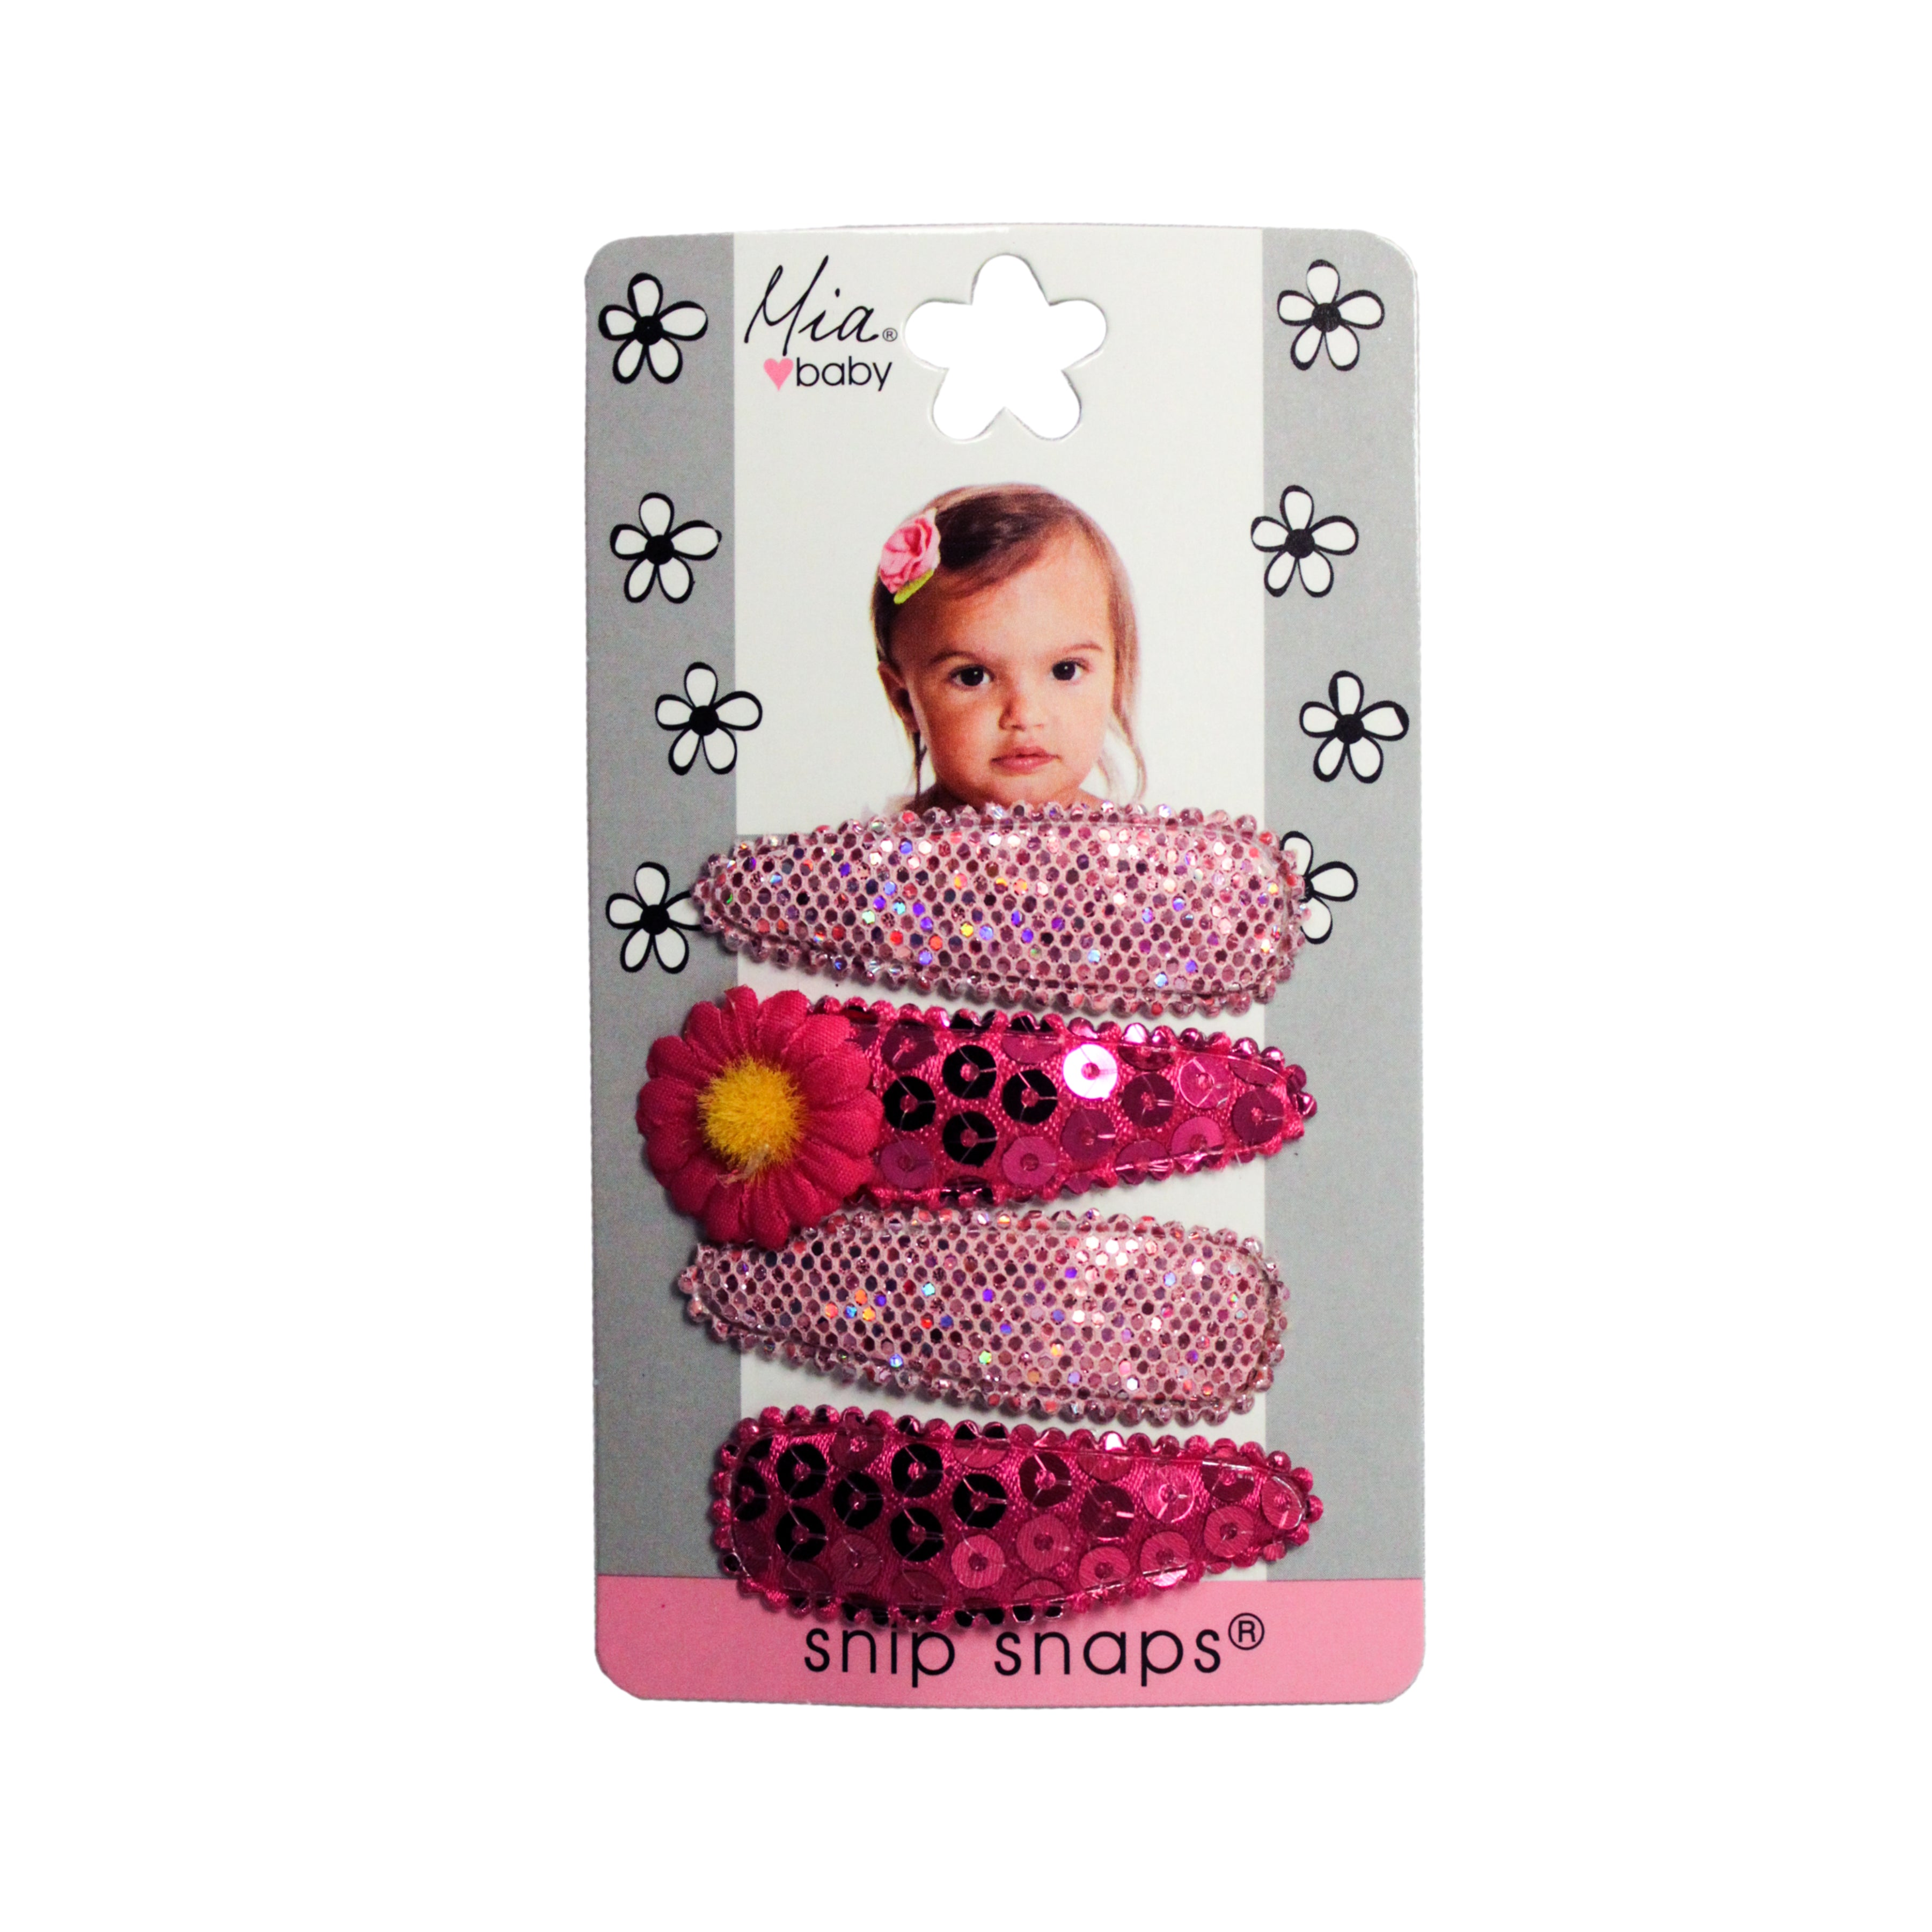 Mia® Baby Snip Snaps® with daisy - hot pink and light pink colors - shown on packaging -  invented by #MiaKaminski #MiaBeauty #Mia #Beauty #Baby #hair #hairaccessories #hairclips #hairbarrettes #love #life #girl #woman